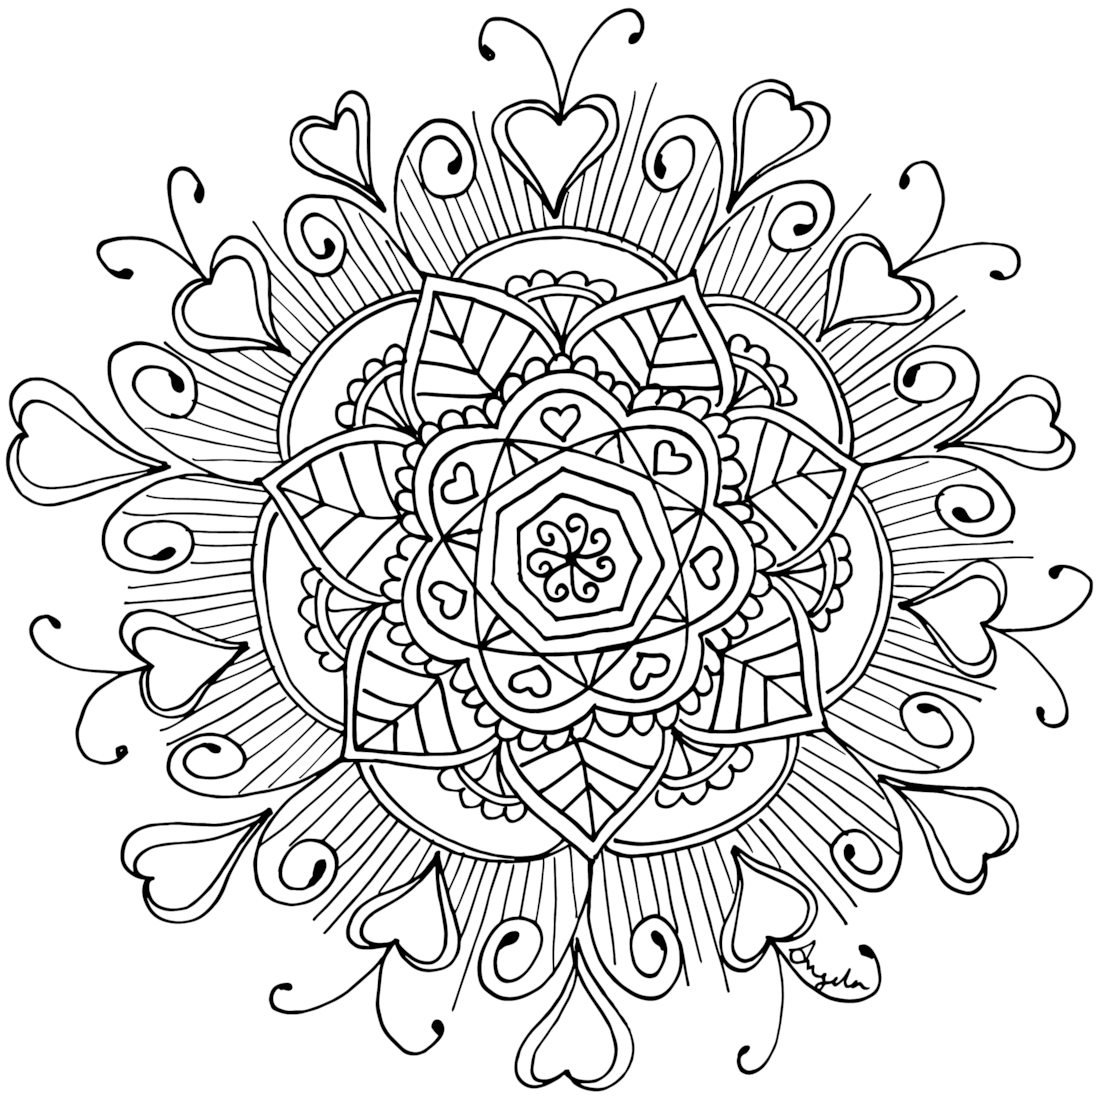 Starry Eyes Coloring Page